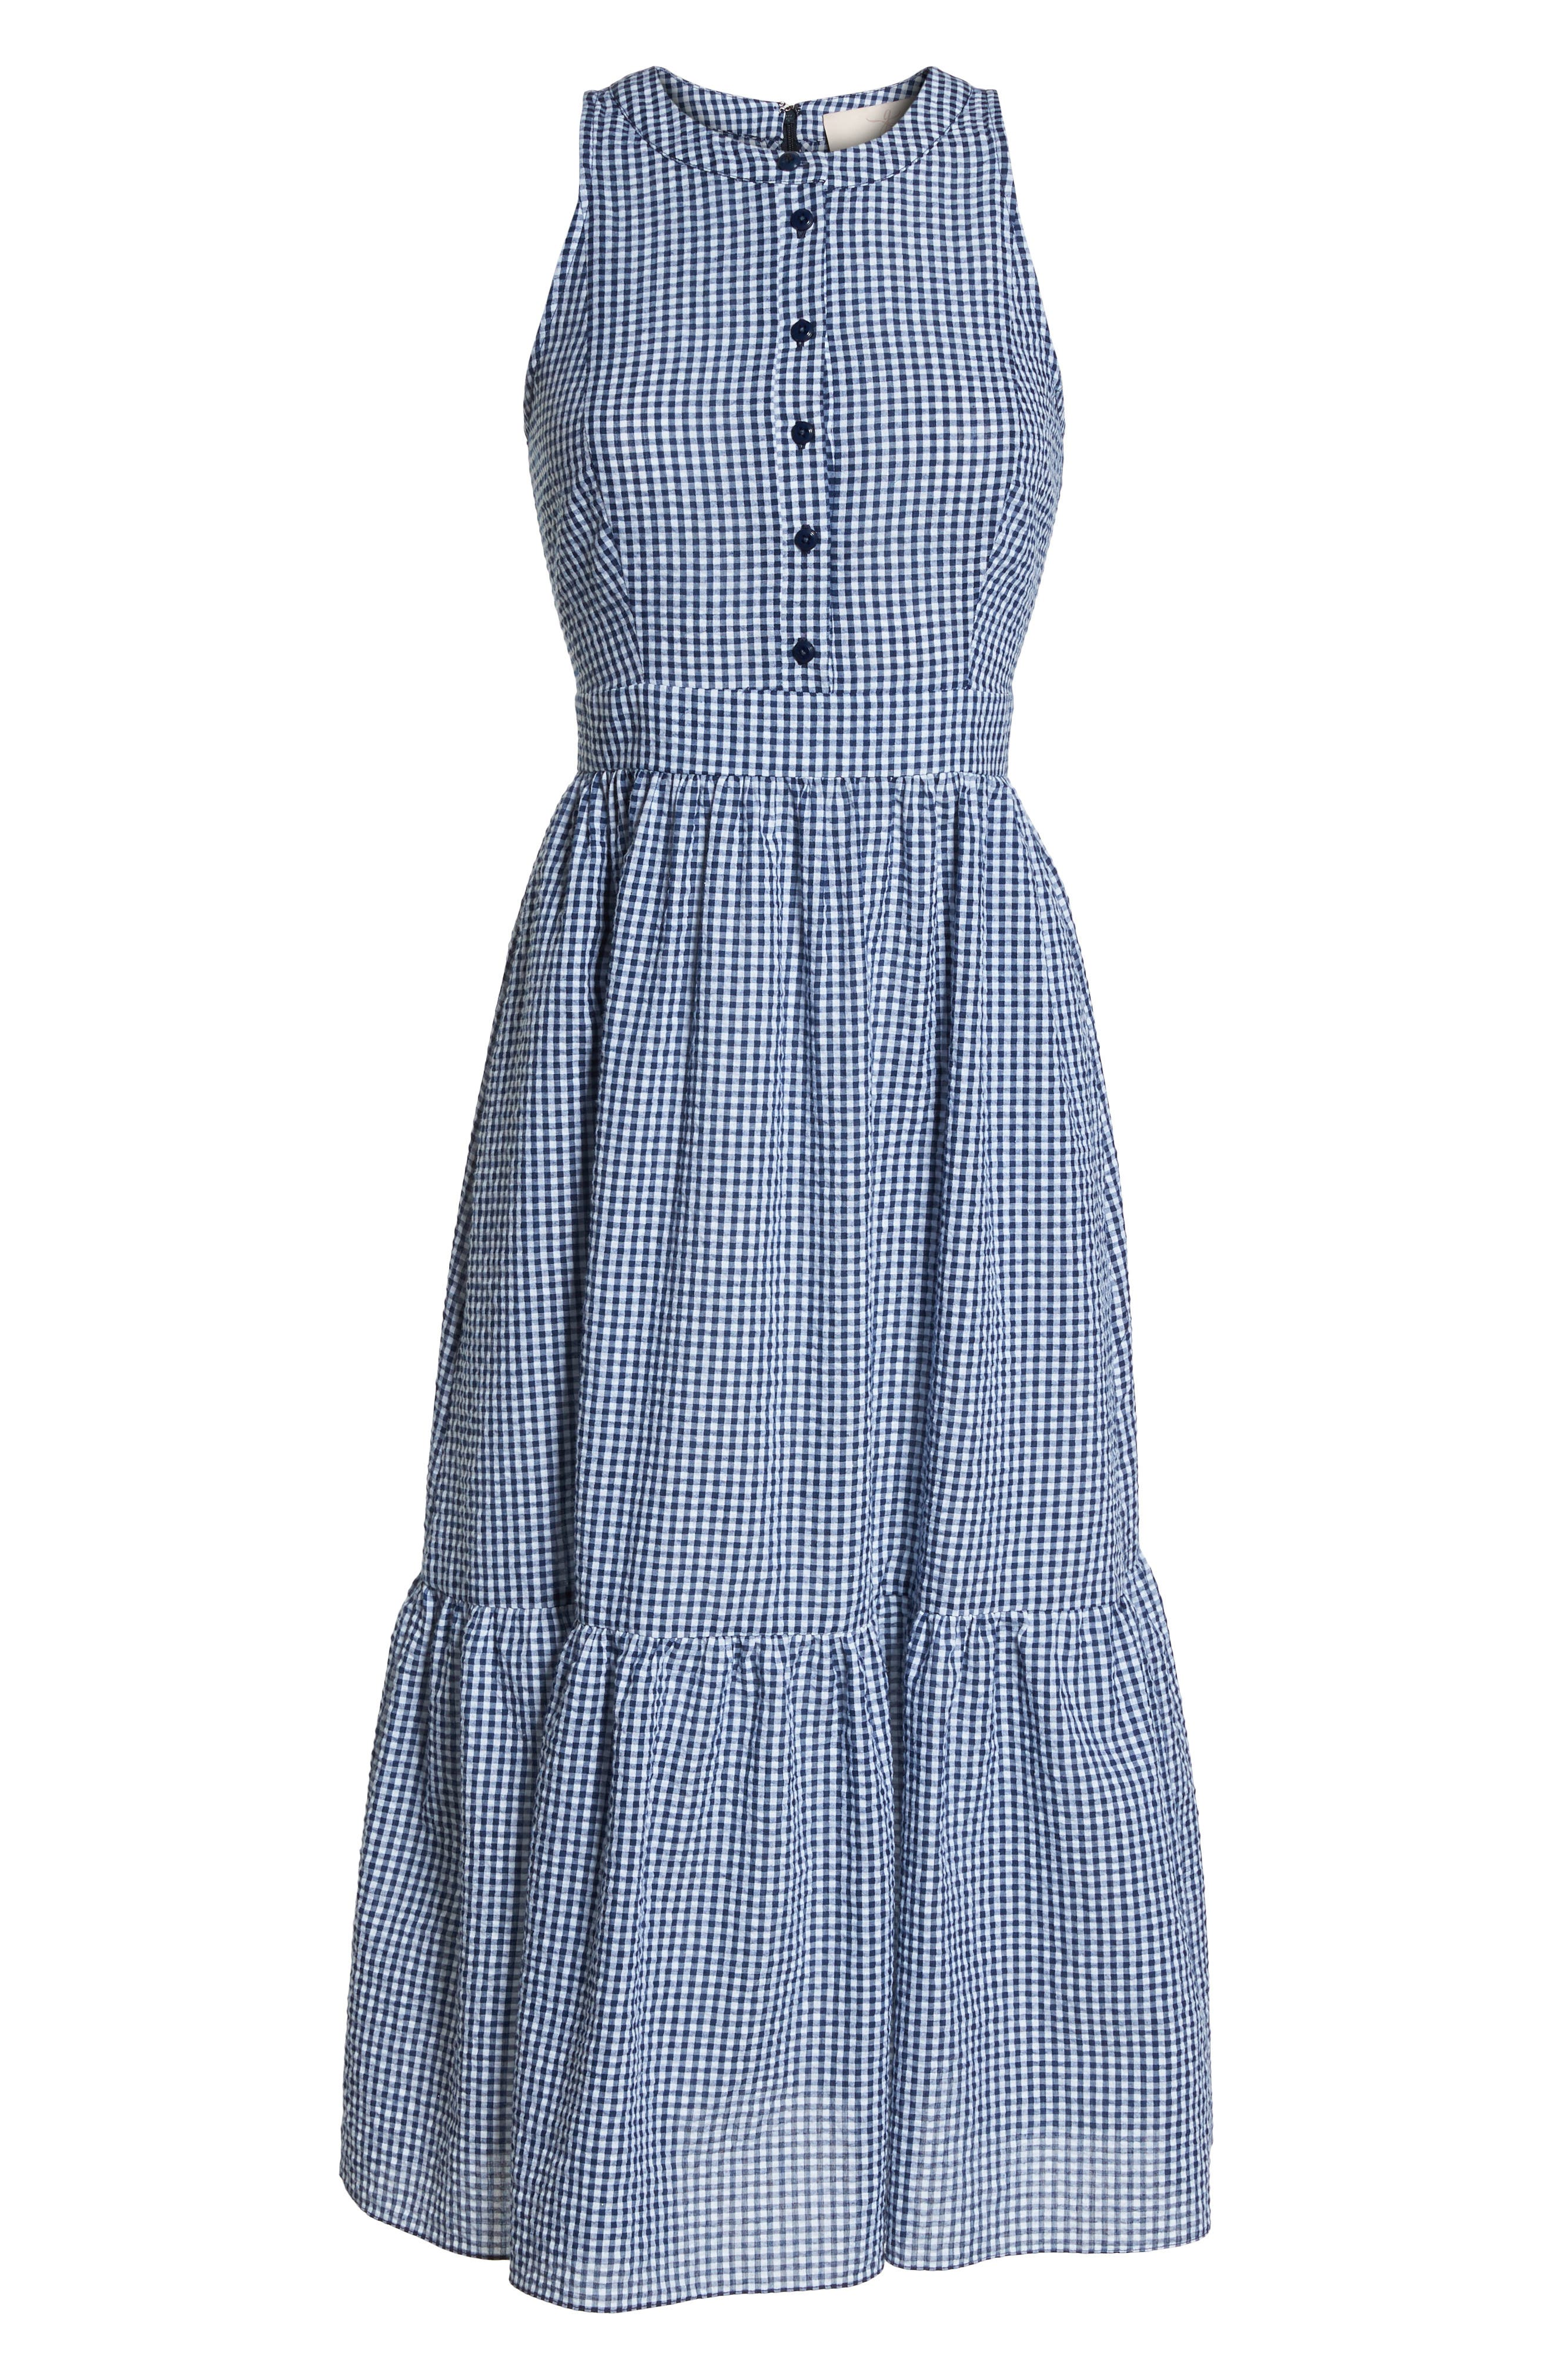 Ardith Gingham Fit & Flare Midi Dress,                             Alternate thumbnail 7, color,                             460